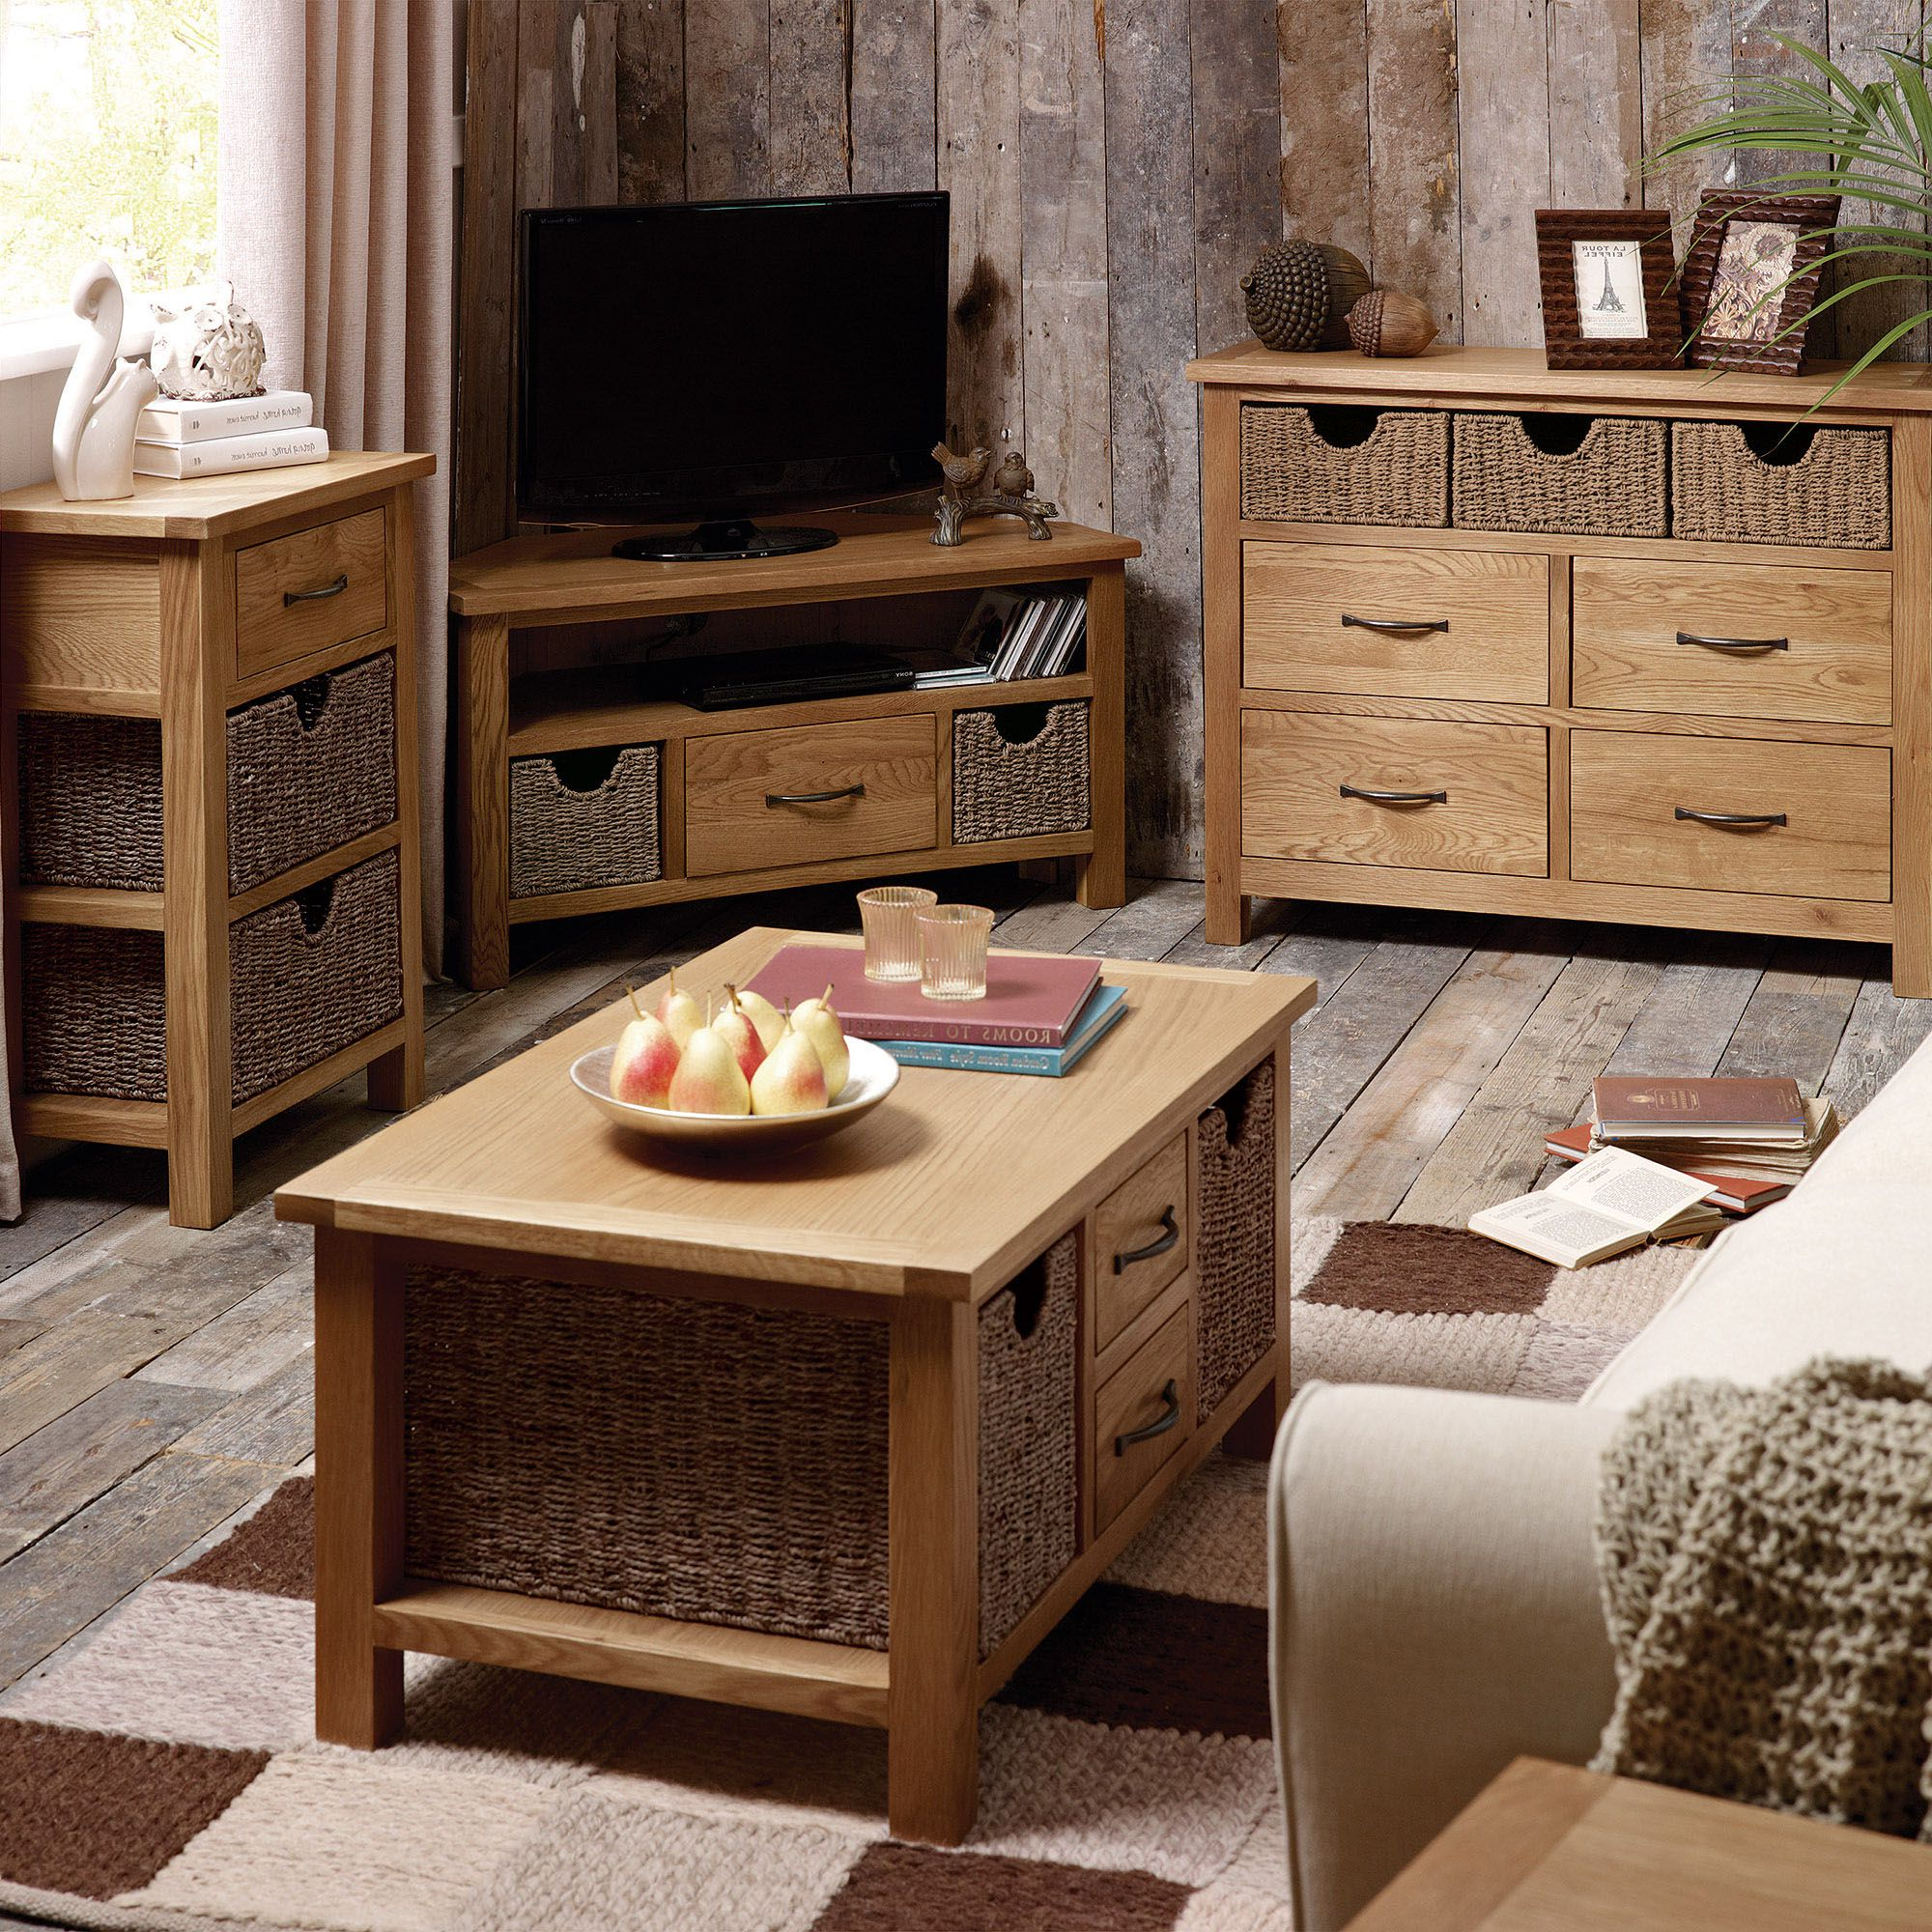 Sidmouth Oak Telephone Table With Baskets | Oak Furniture Inside Sherbourne Oak Corner Tv Stands (View 5 of 20)